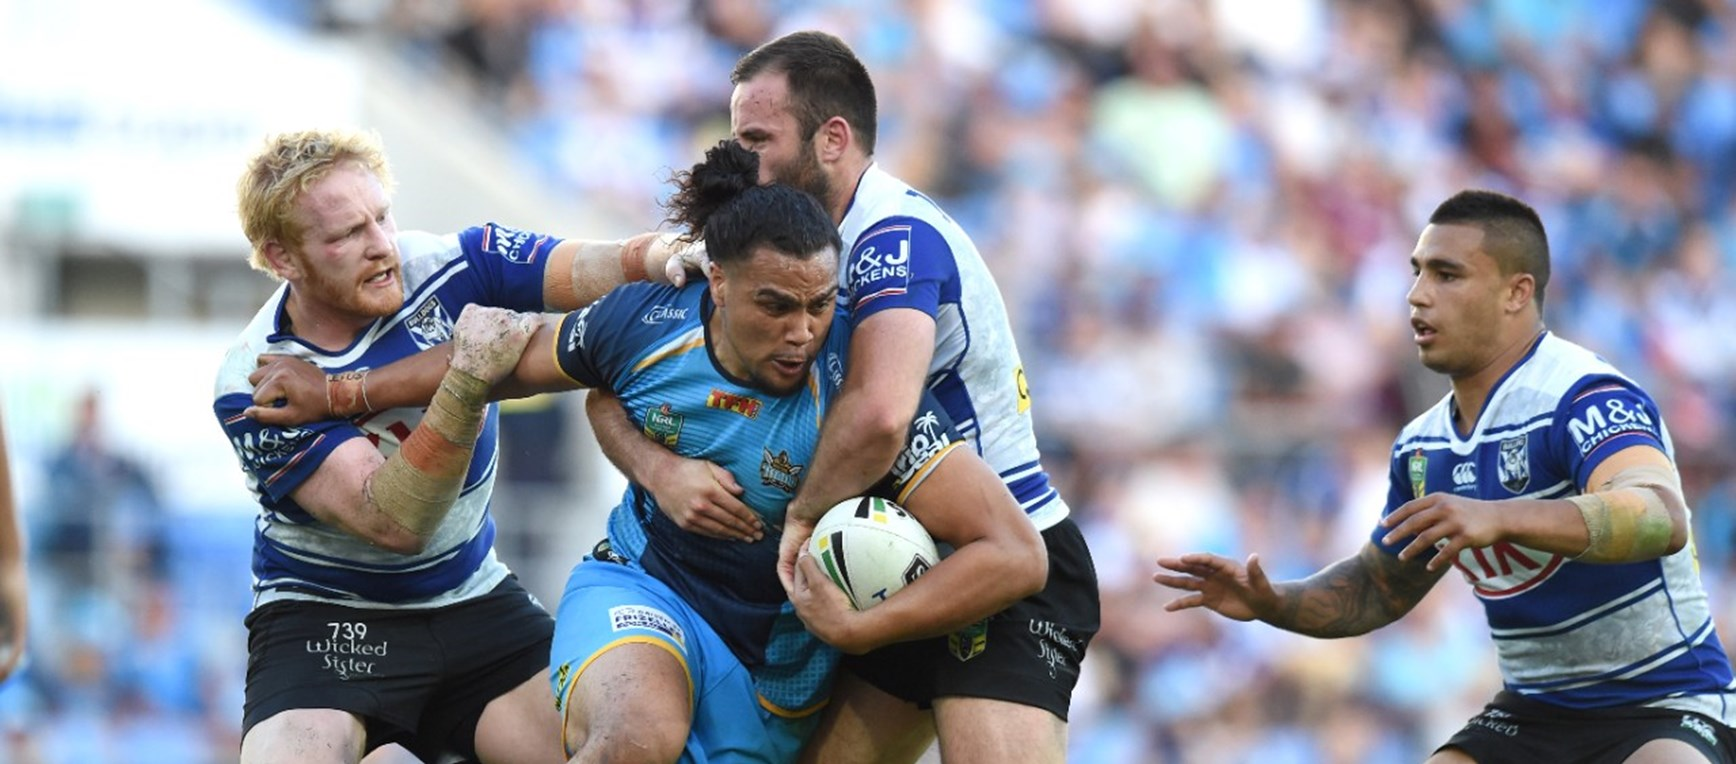 GALLERY: Titans v Bulldogs